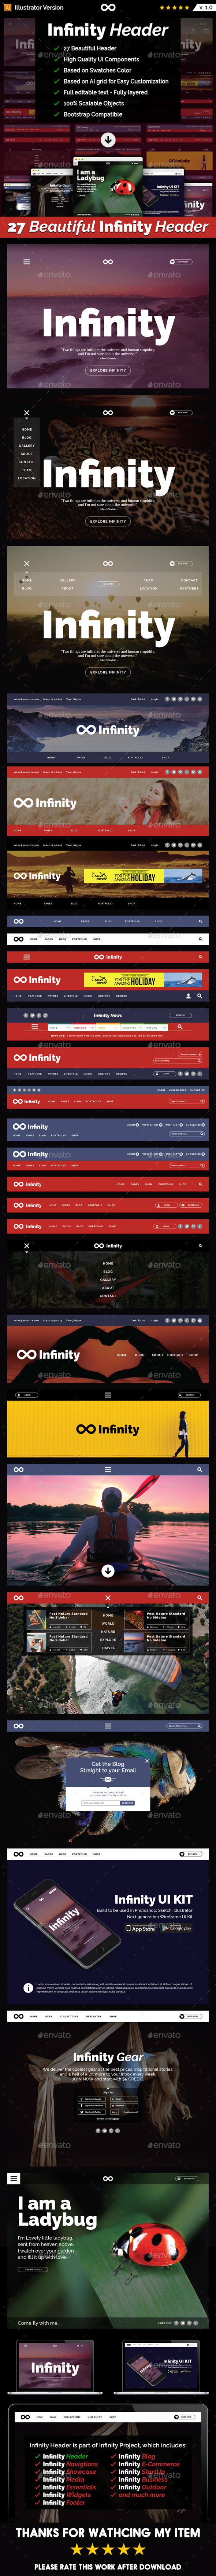 Infinity Header - UI Kit - User Interfaces Web Elements